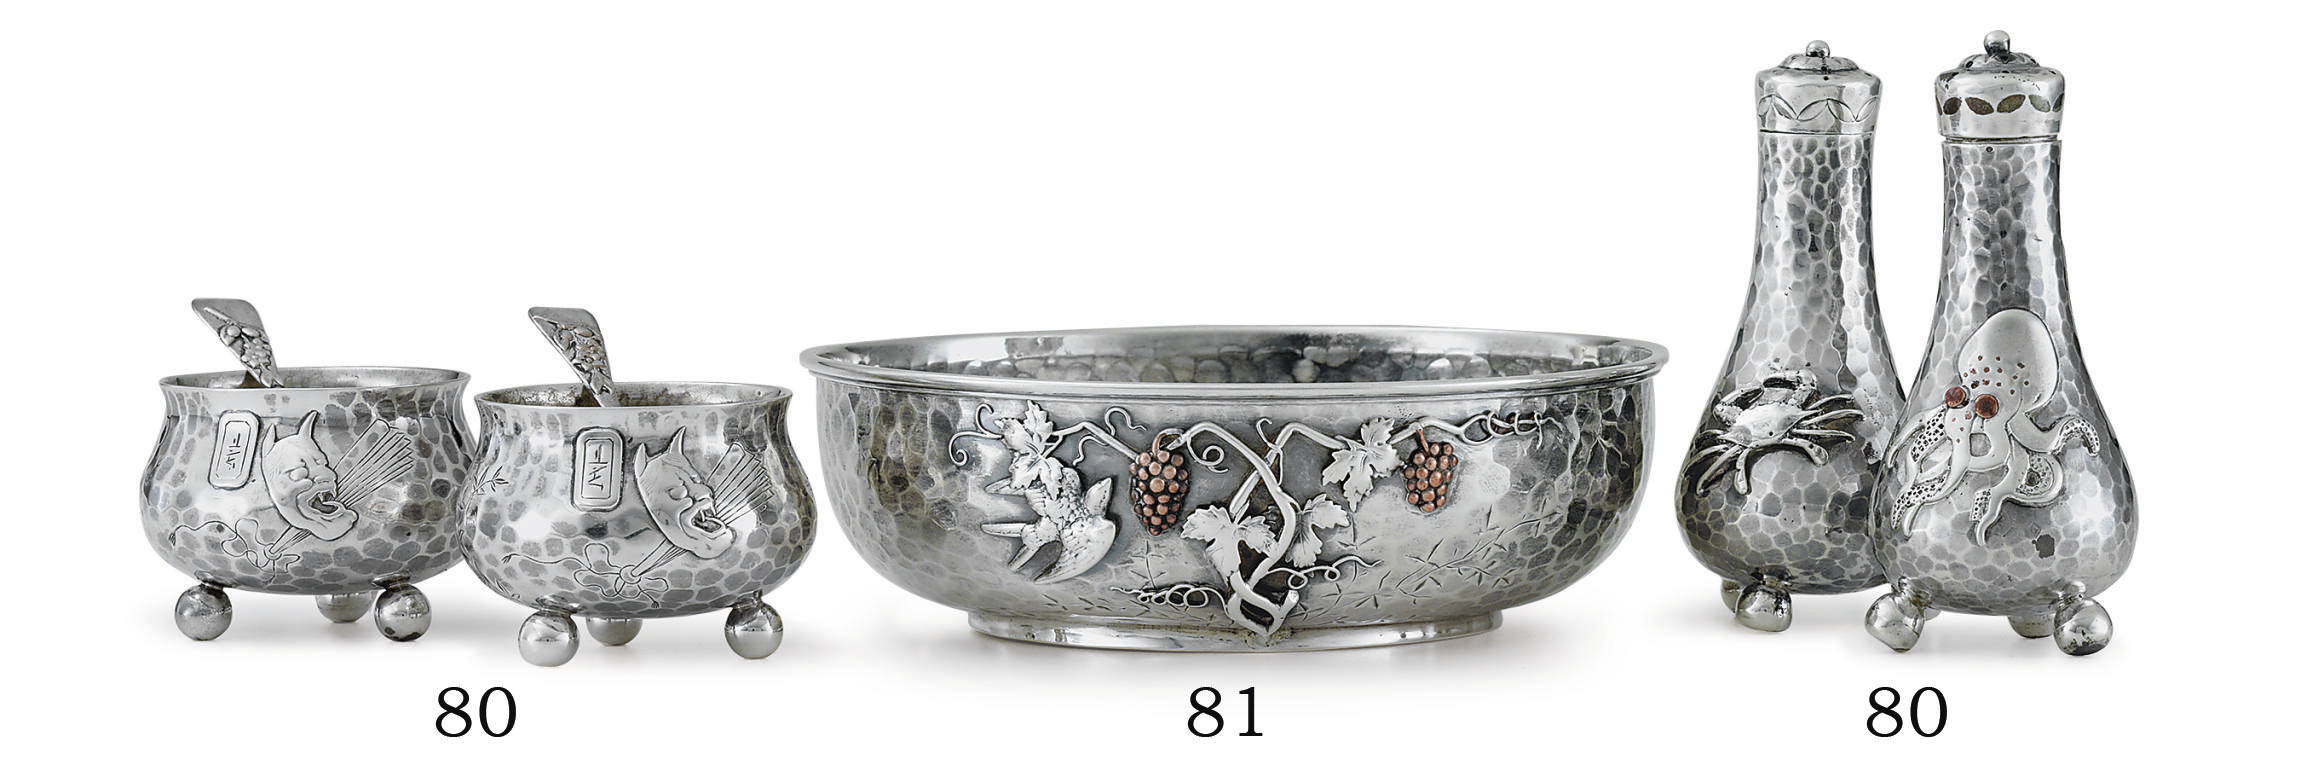 A PAIR OF SILVER AND MIXED-MET